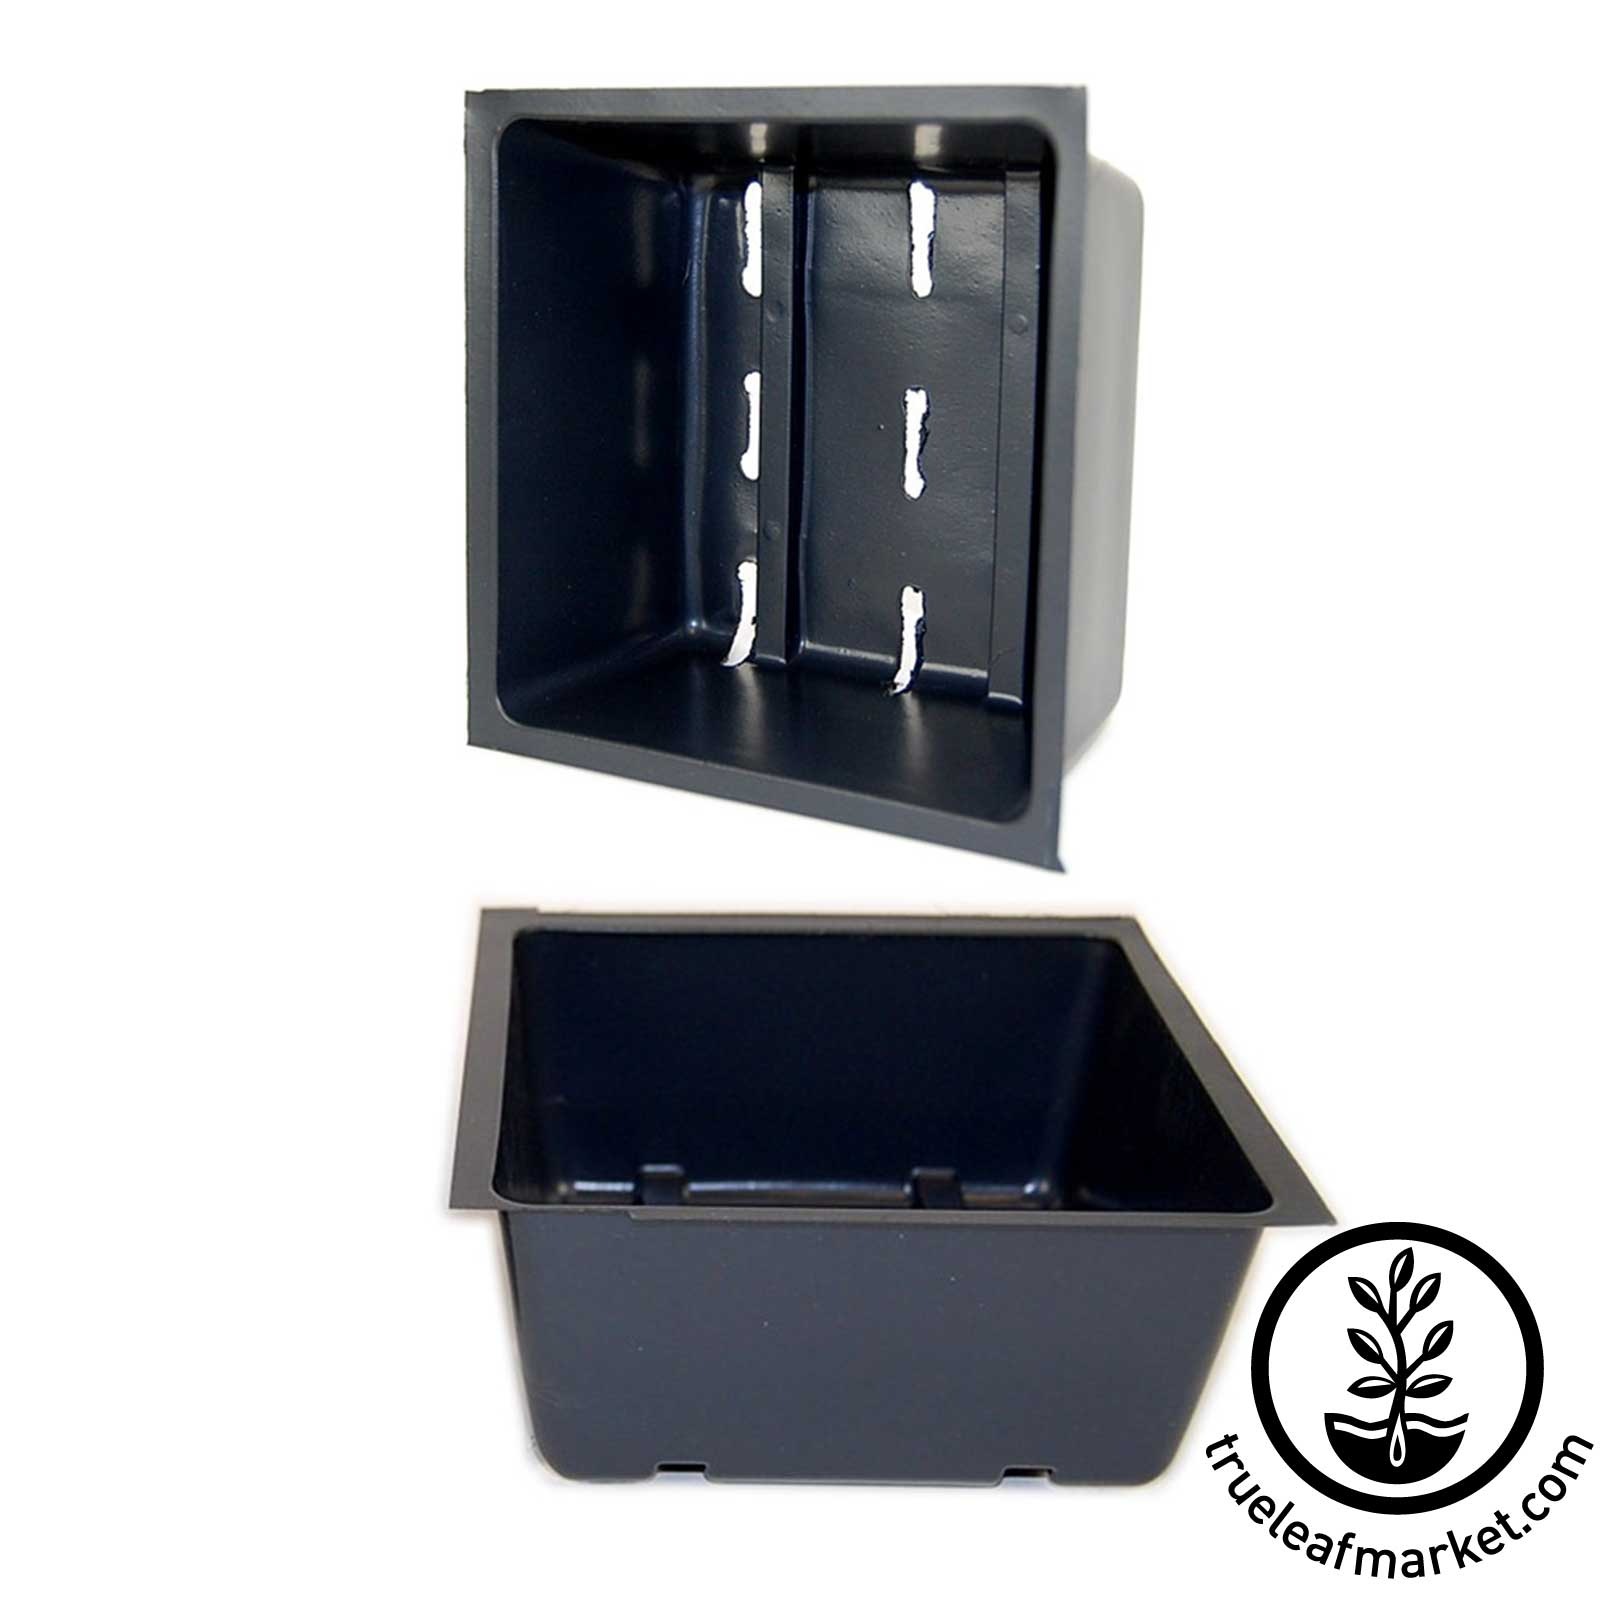 5 x 5 Inch Growing Tray Inserts with Drain Holes